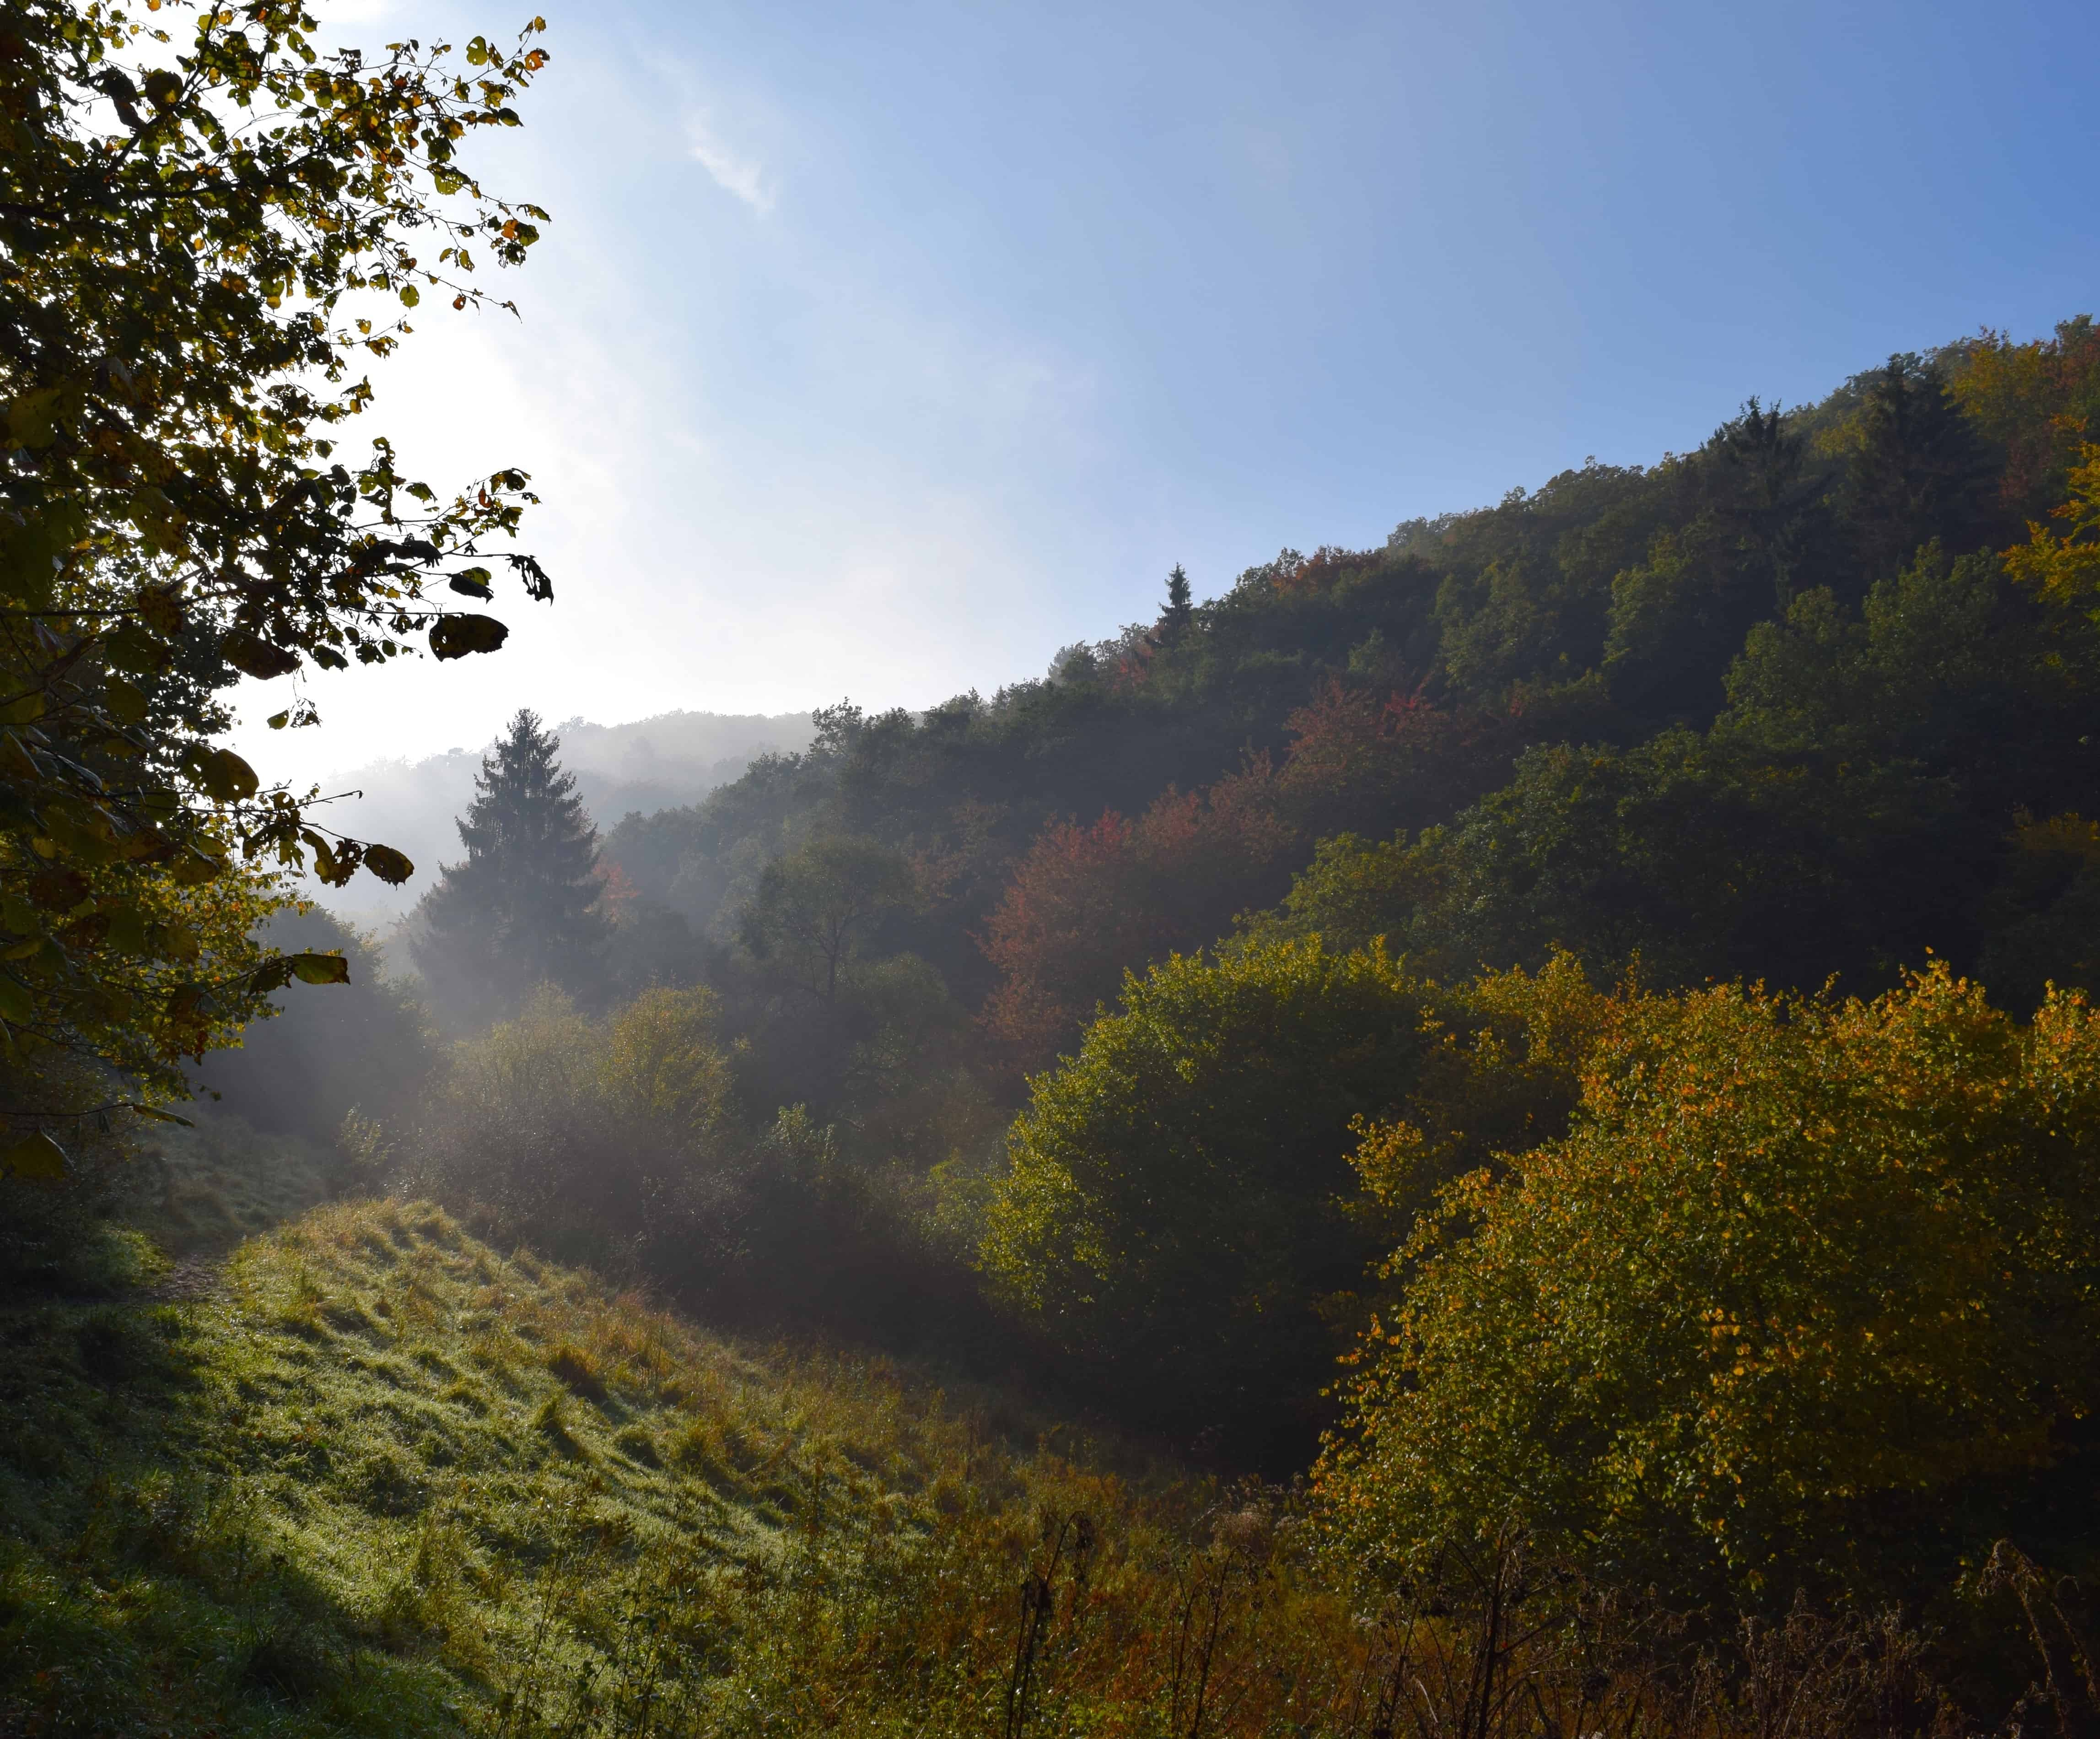 Free picture fog mountain nature landscape dawn mist wood tree